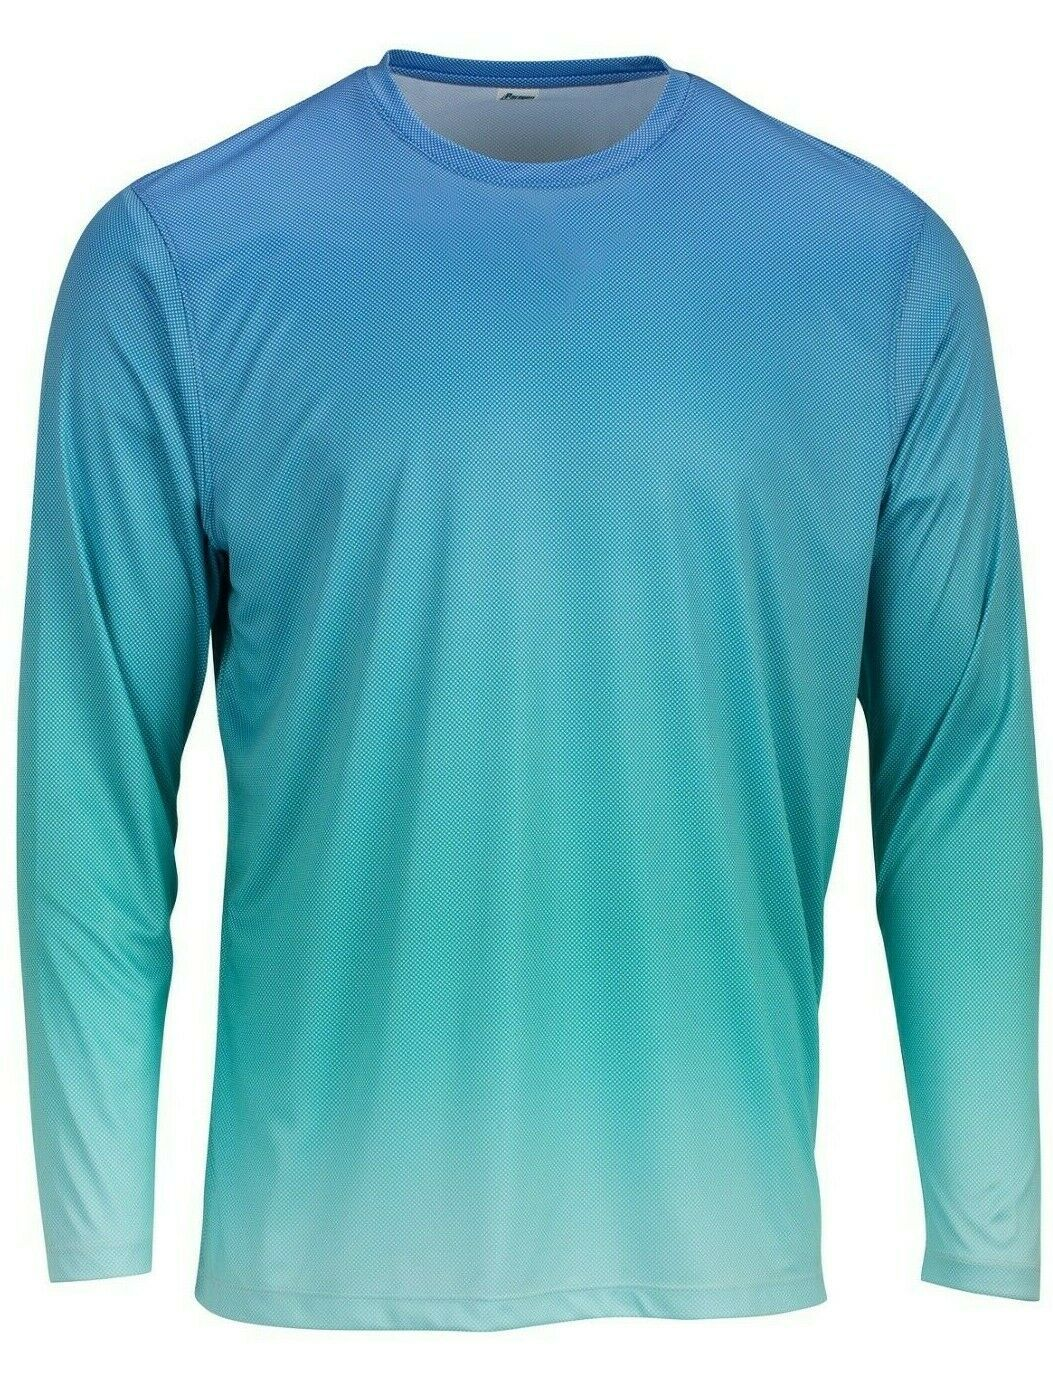 Sun Protection Long Sleeve Dri Fit Blue Mist Teal fade sun shirt UPF 50+